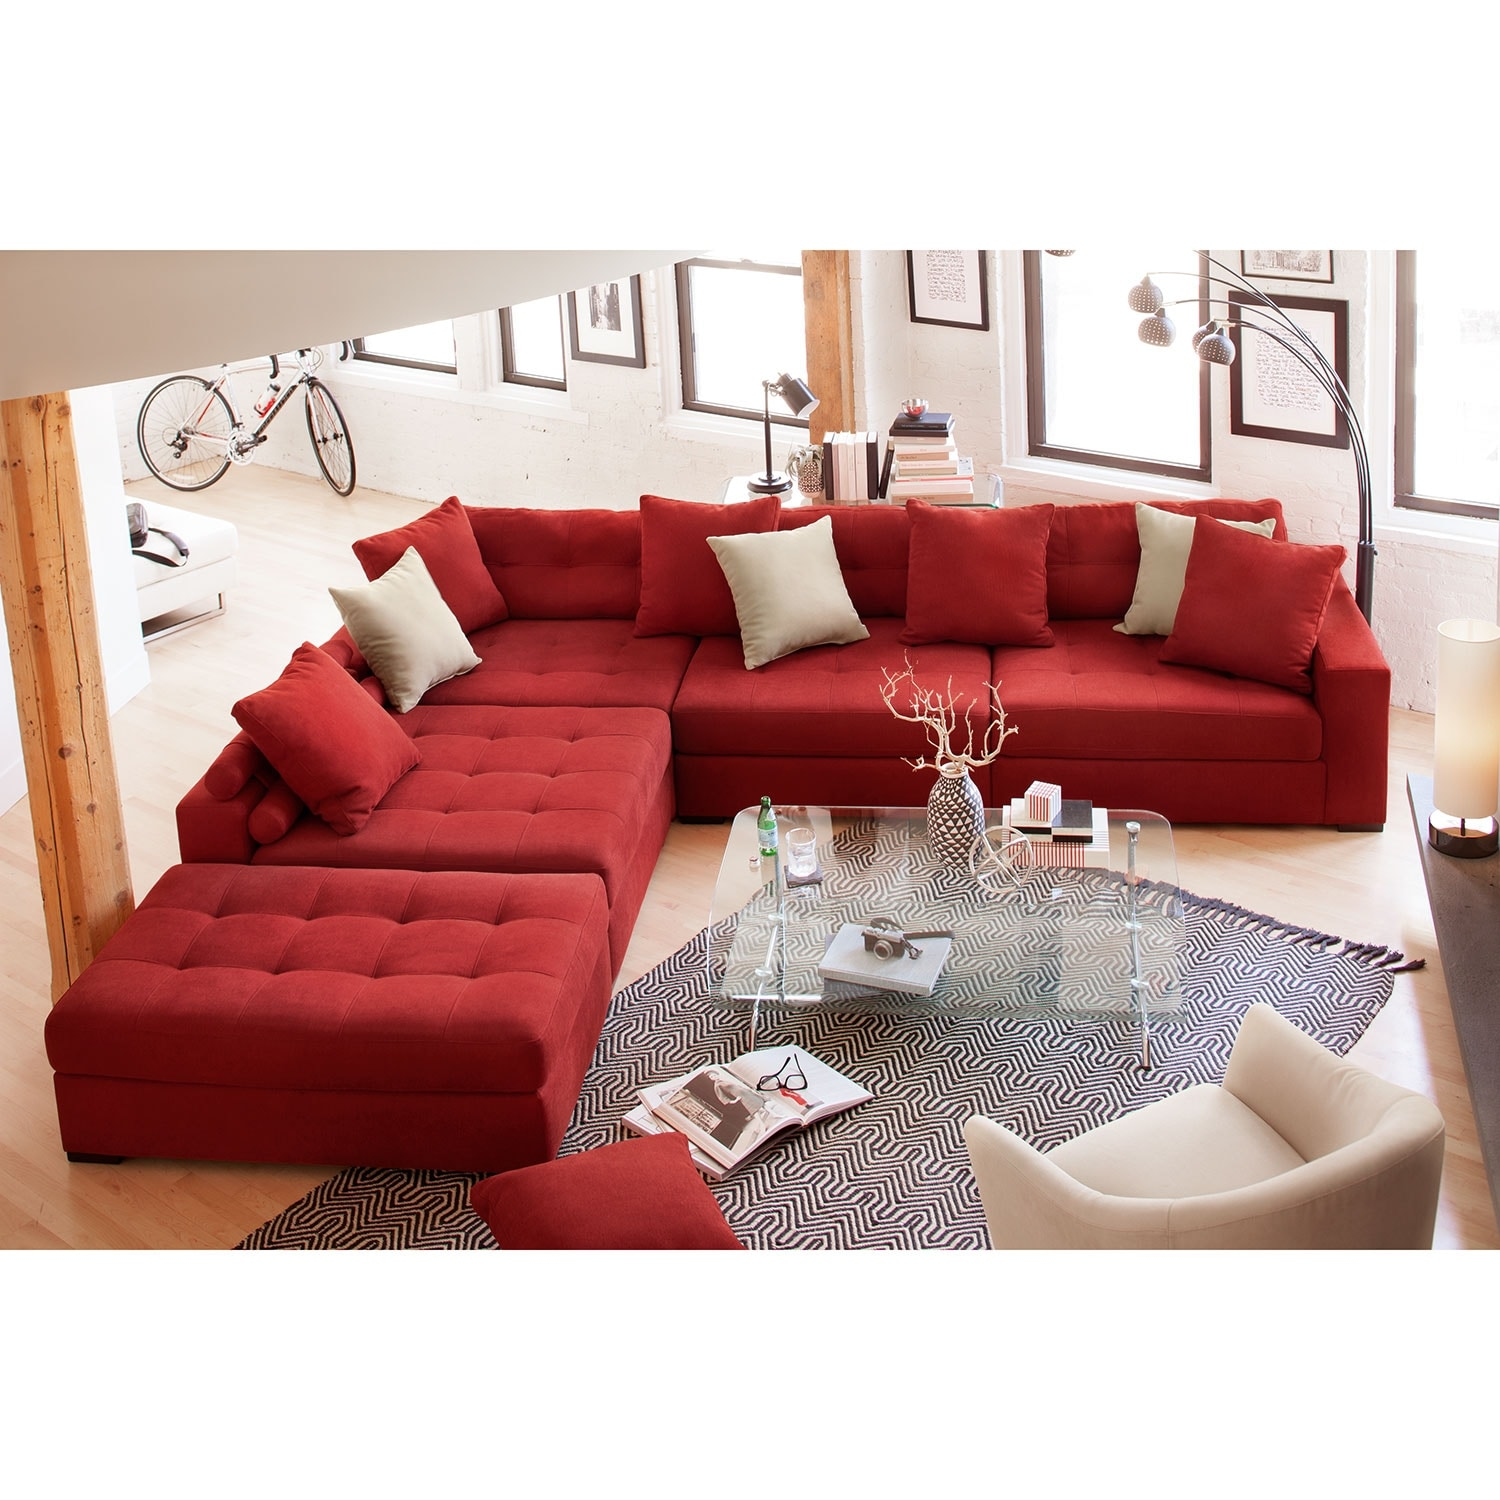 Venti 5 piece sectional with cocktail ottoman red for Red sectional sofa value city